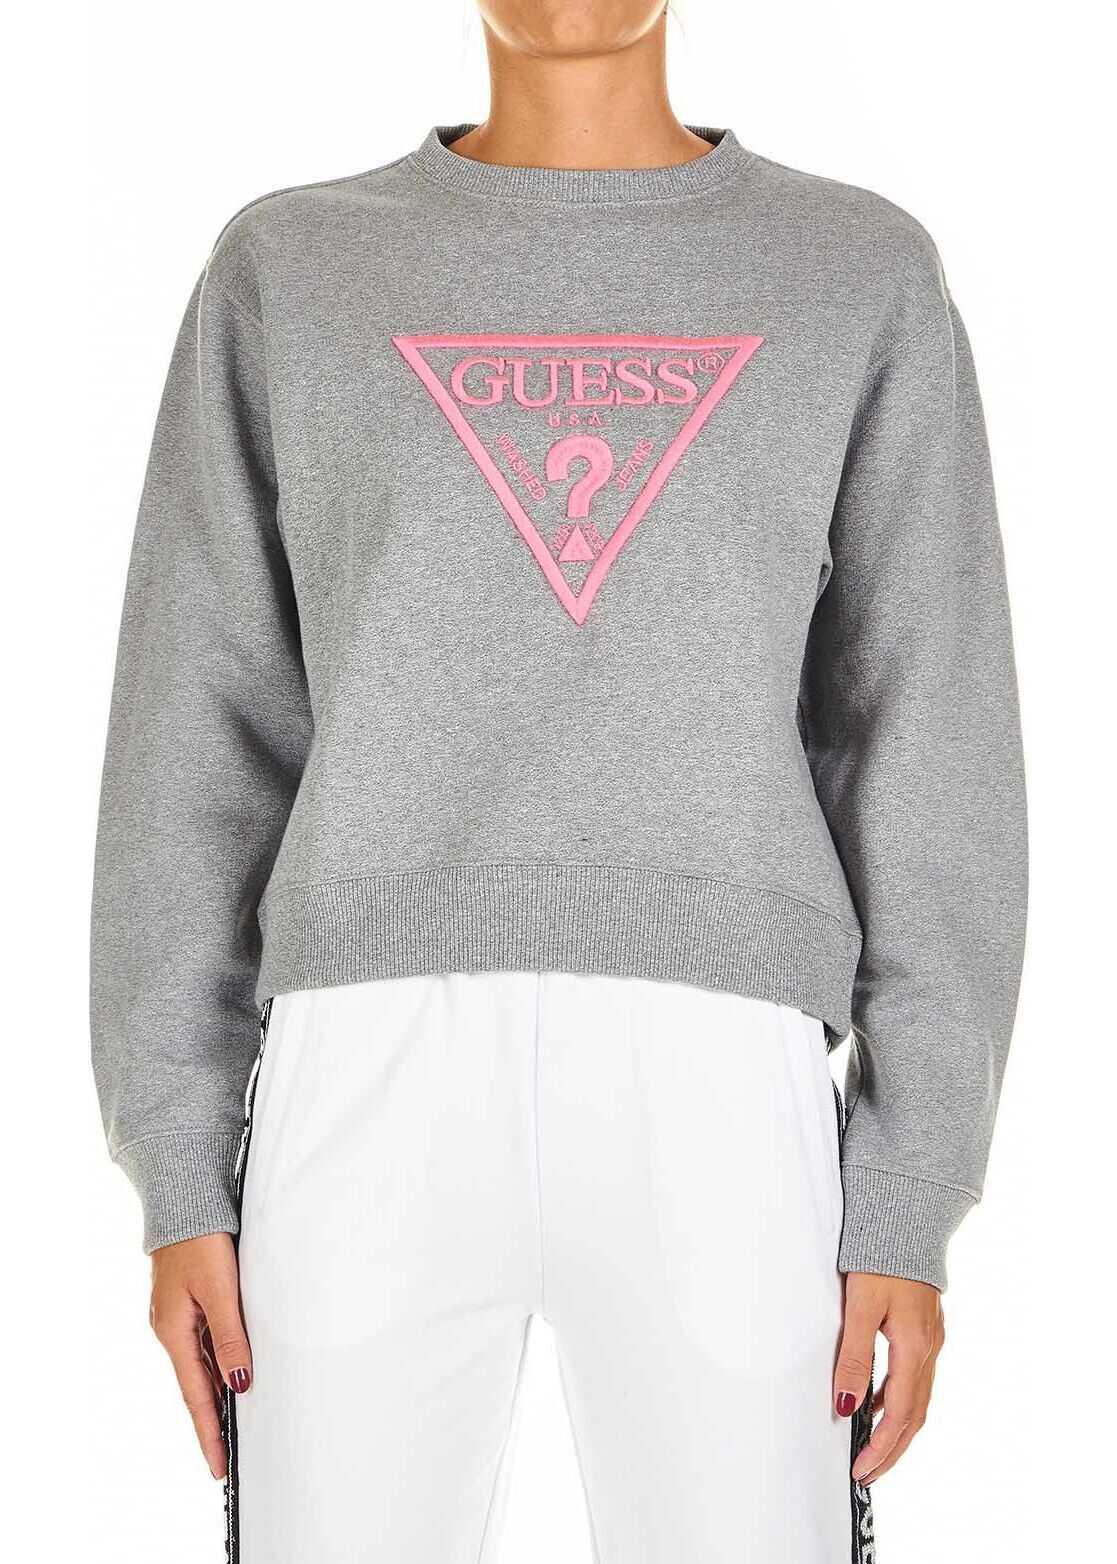 GUESS Sweatshirt with logo embroidery Grey